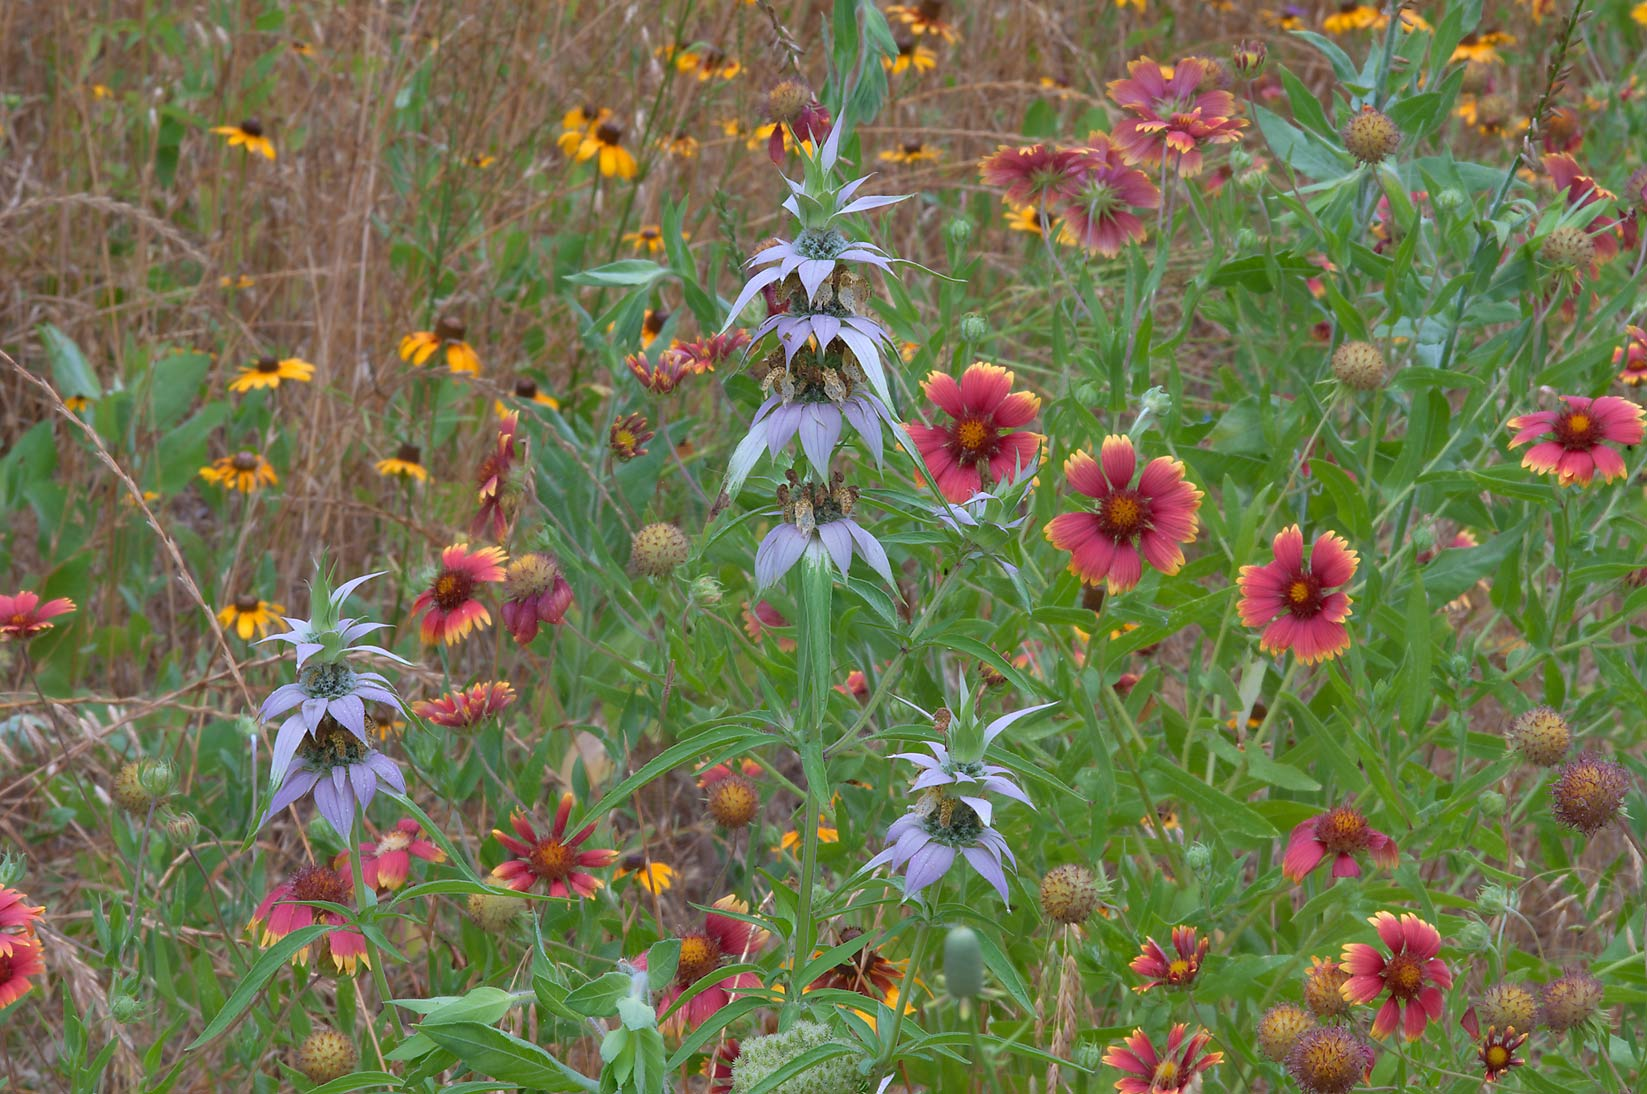 Multicolored flowers in Washington-on-the-Brazos State Historic Site. Washington, Texas